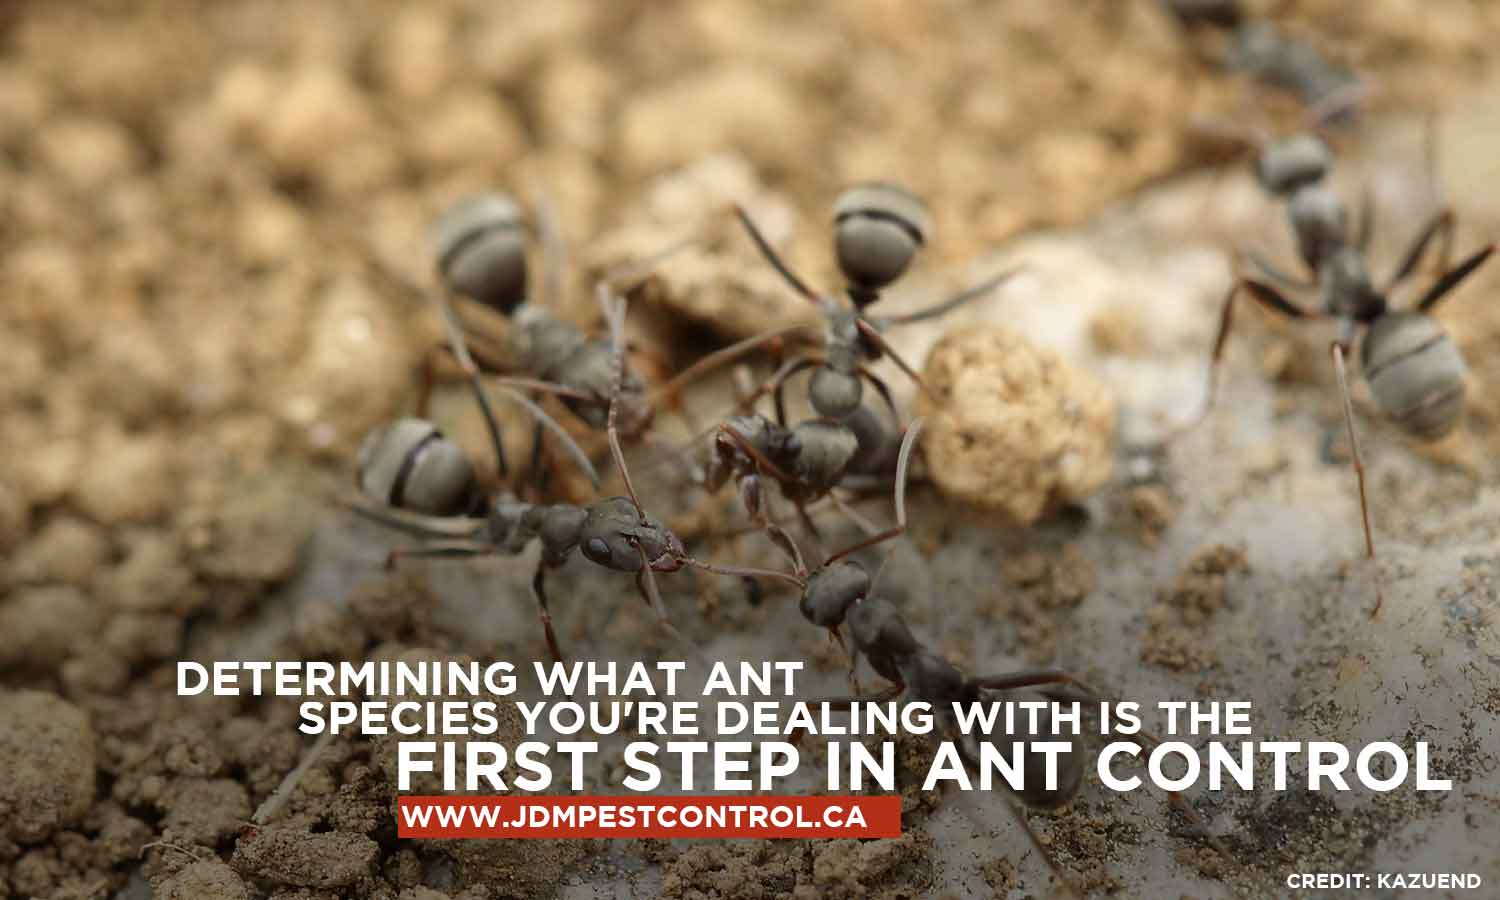 Determining what ant species you're dealing with is the first step in ant control